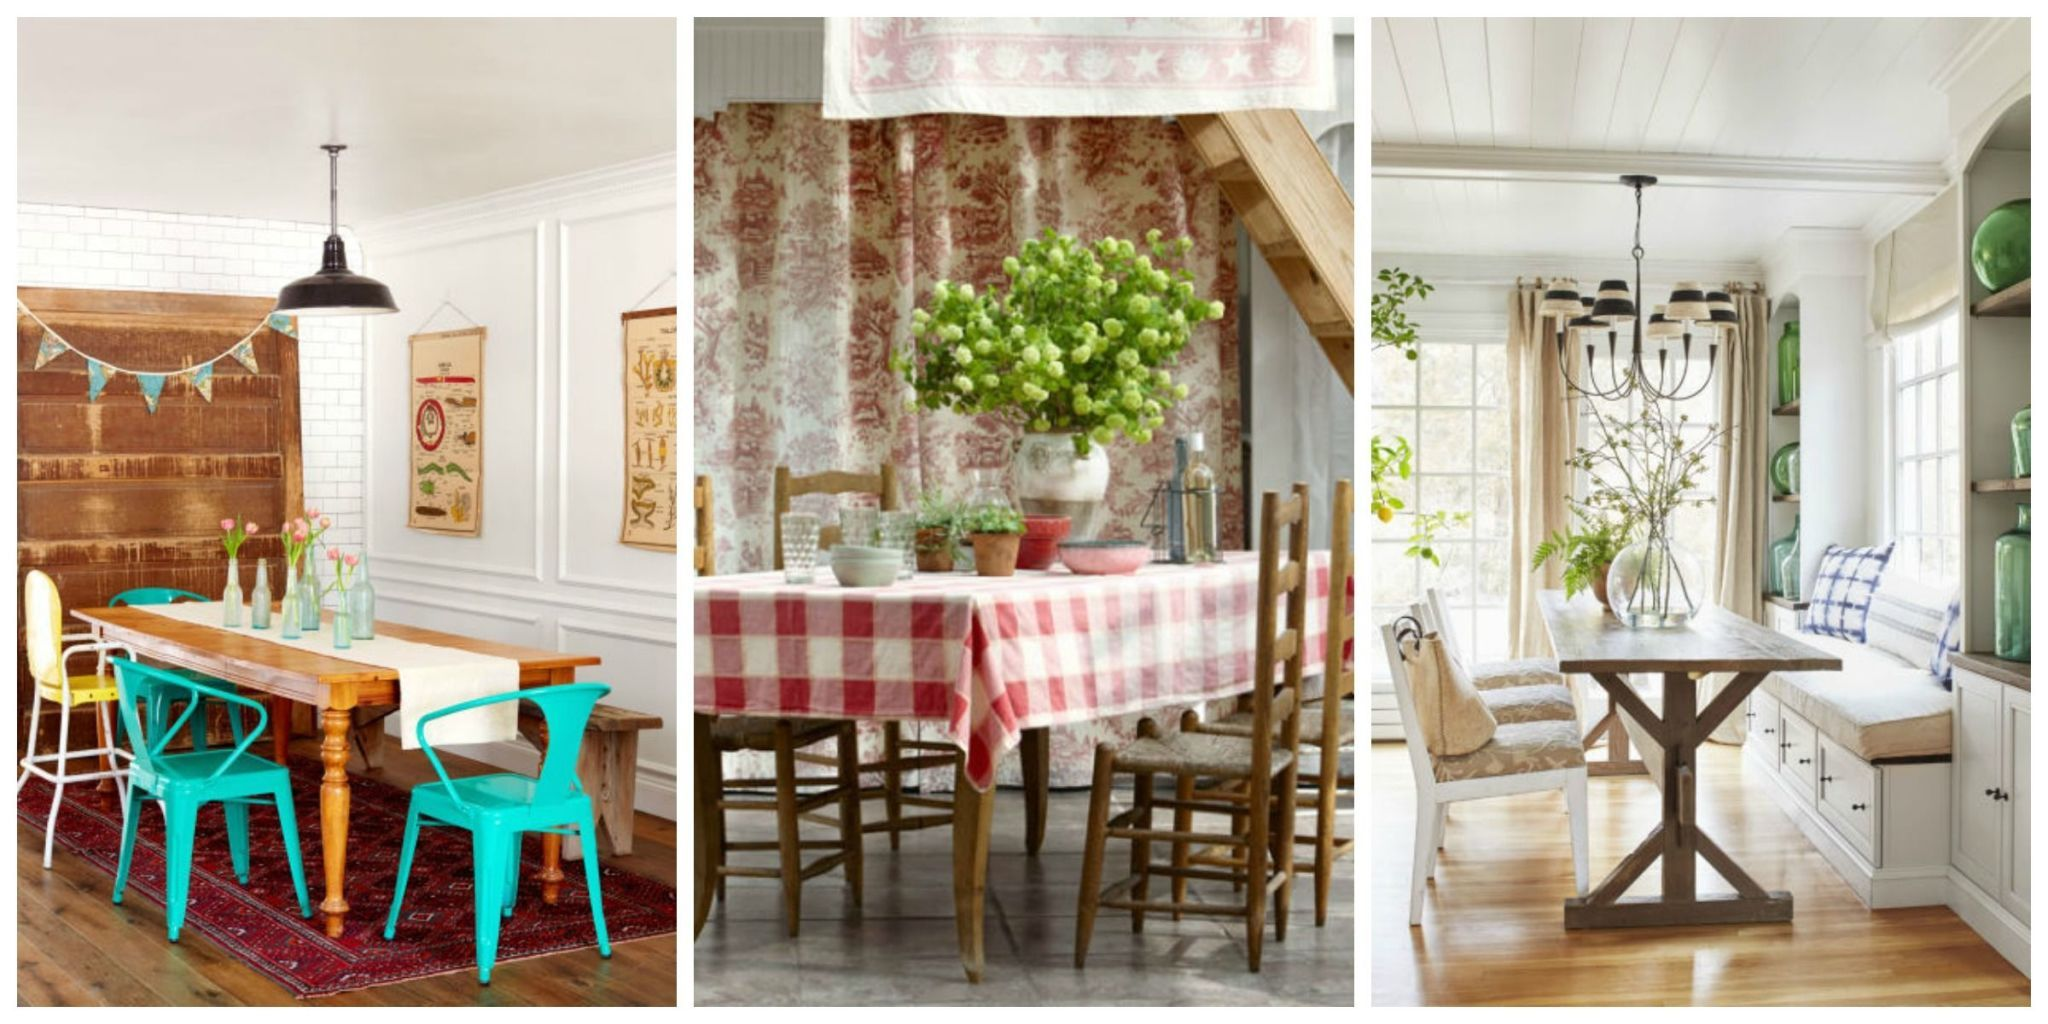 Delightful From Floral Themes To Vintage Furniture, Our Dining Room Design Guide Will  Help You Transform Your Dining Space In No Time. Plus, Makeover Your  Kitchen, ...